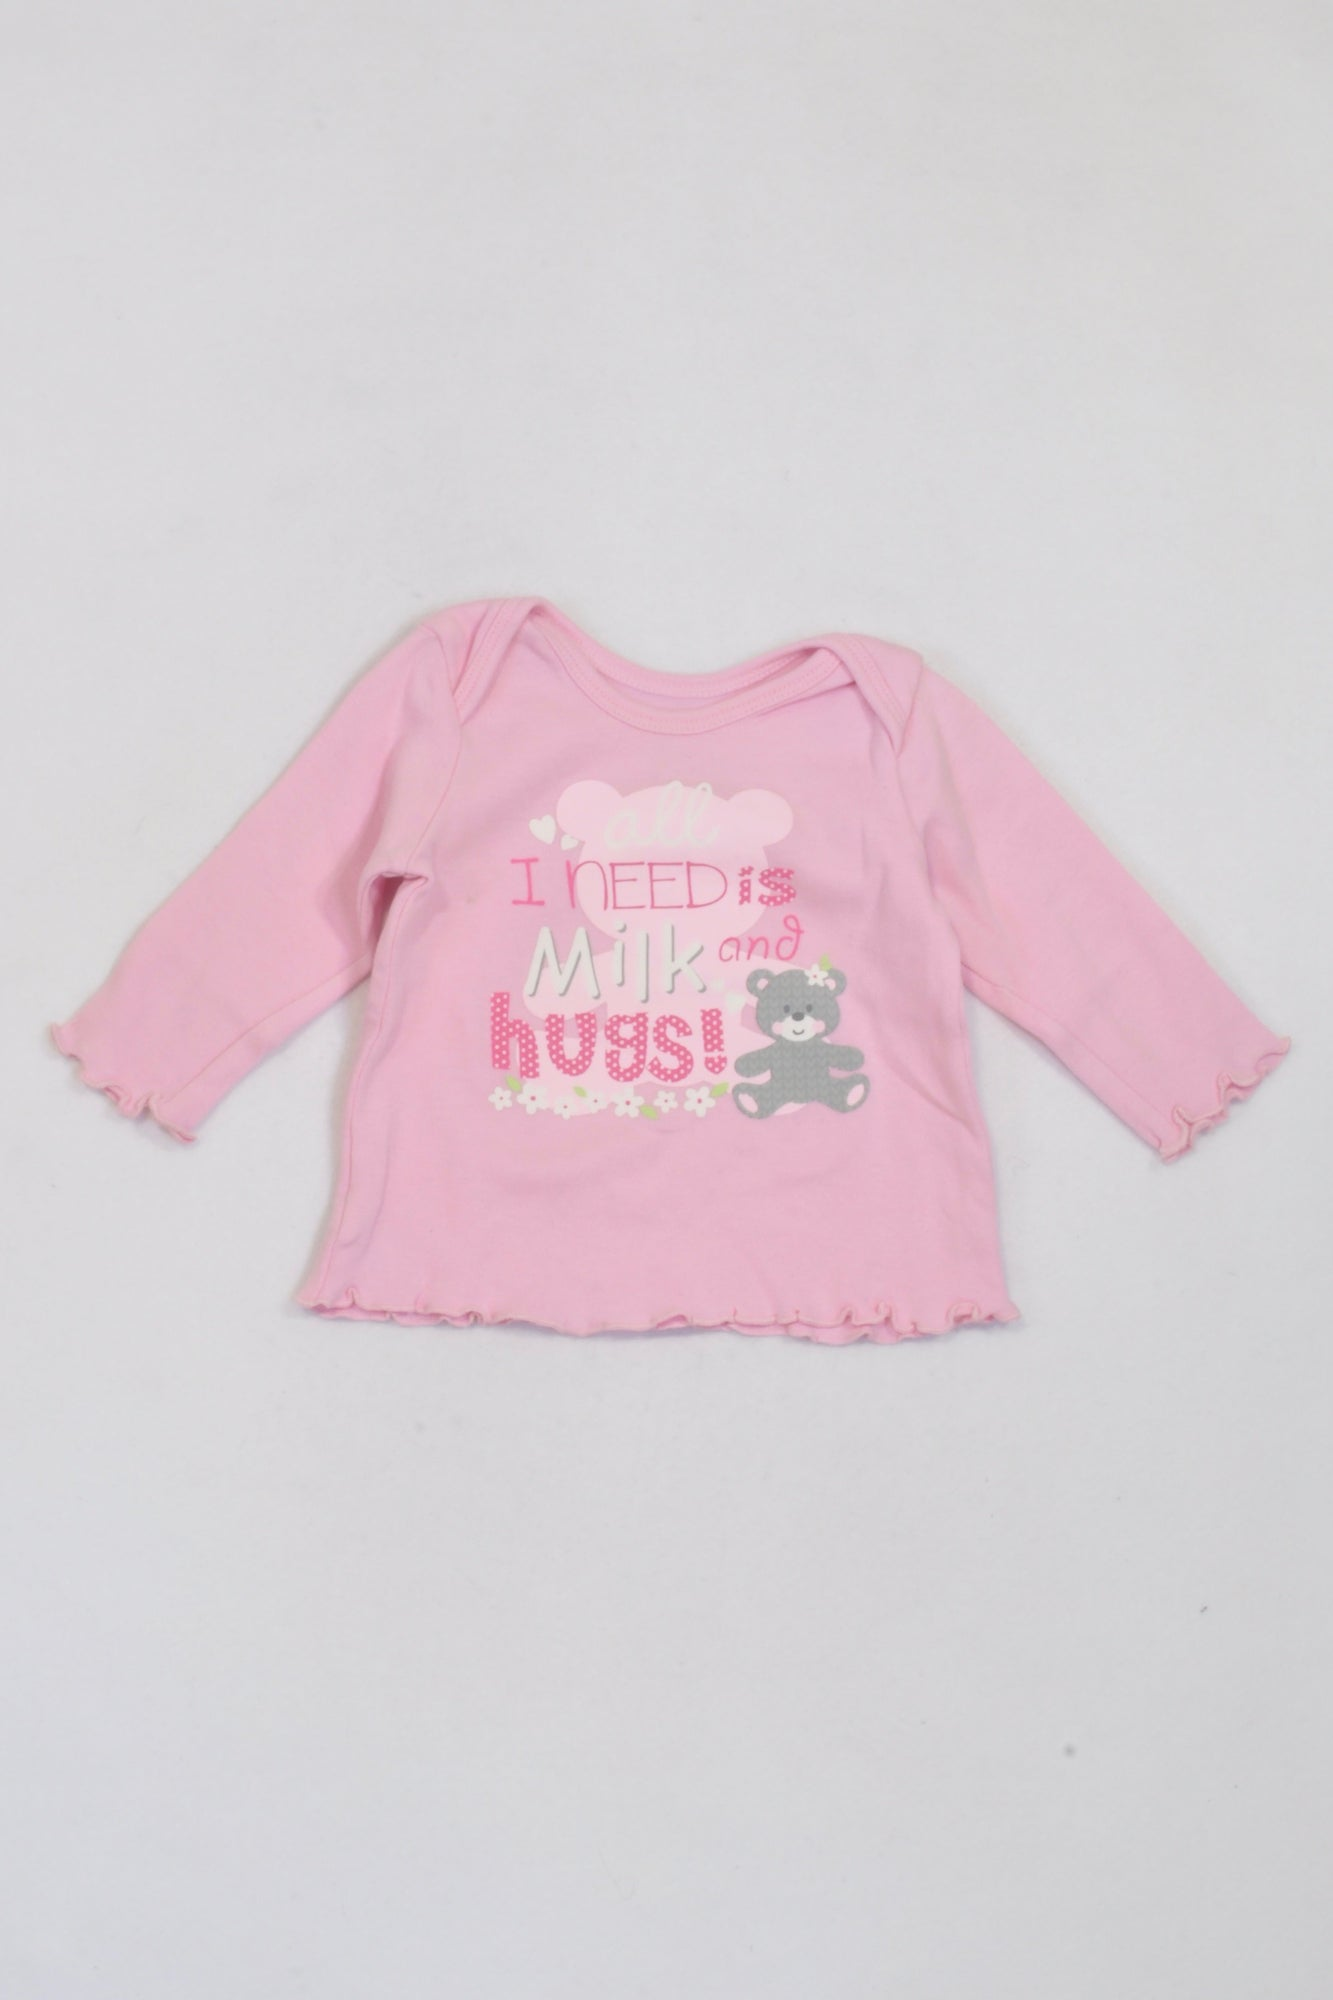 Woolworths Pink All I Need Is Milk T-shirt Girls 3-6 months